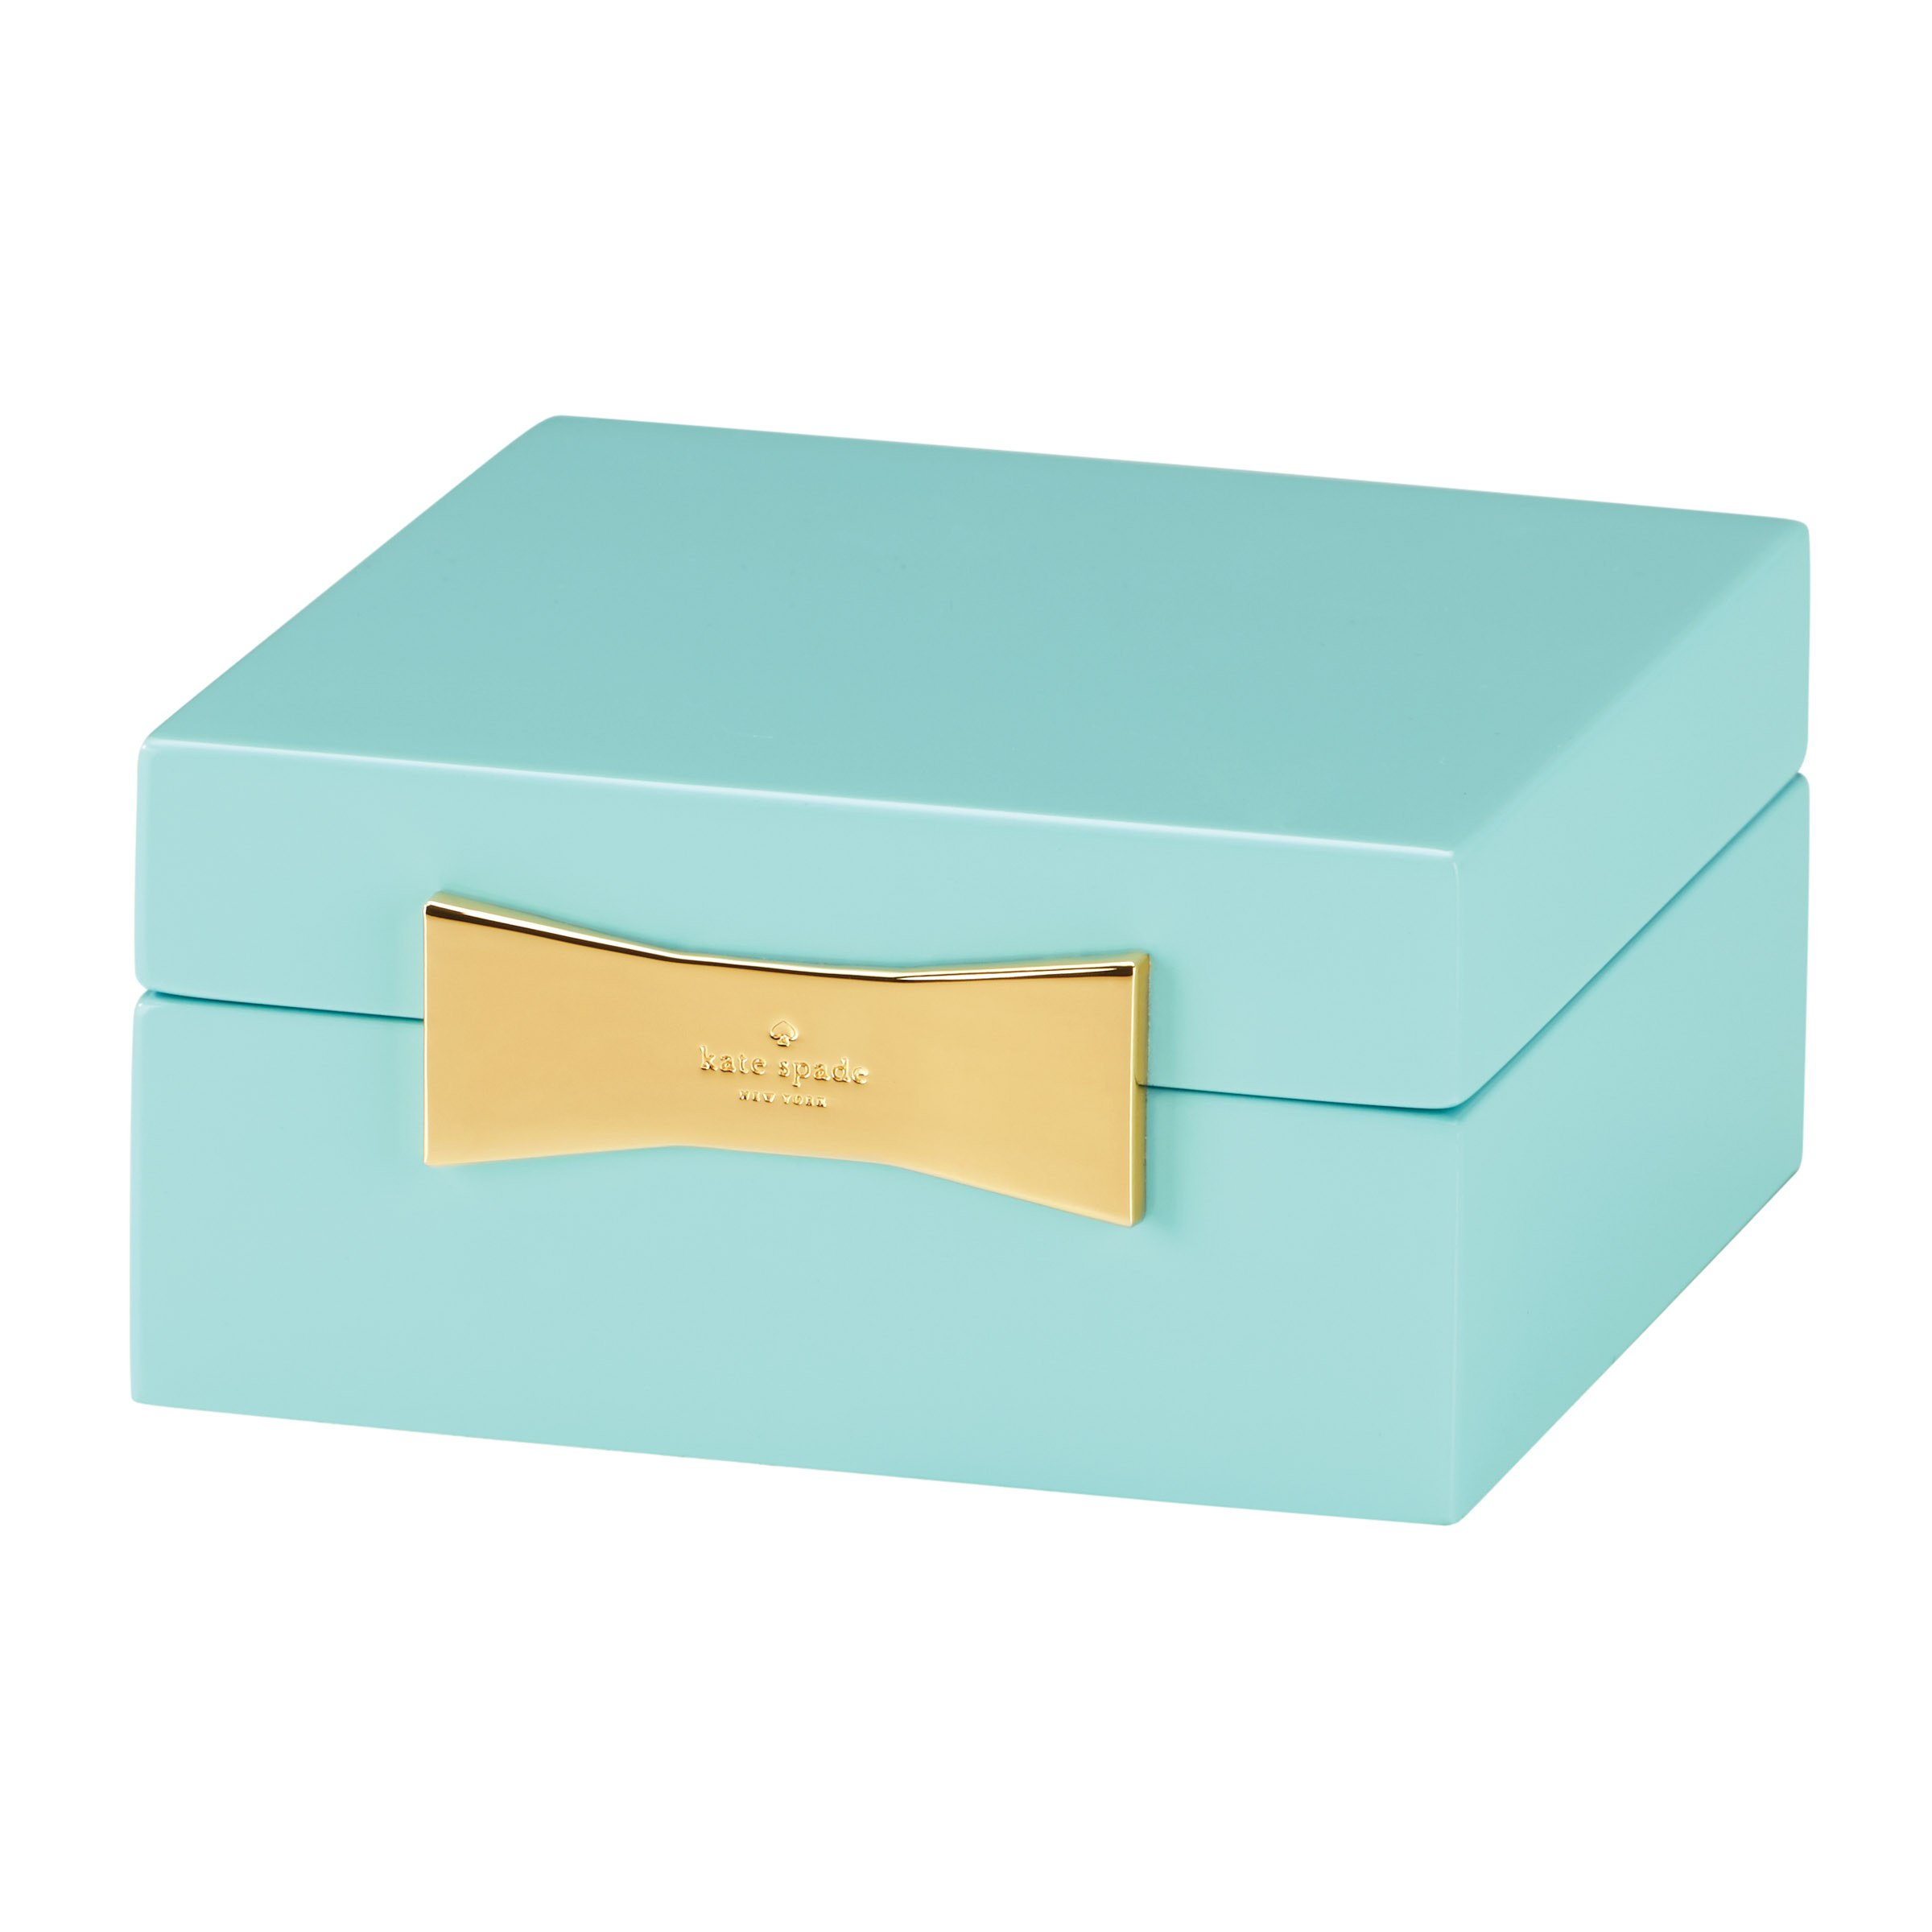 kate spade new york Garden Drive Square Jewellery Box Turquoise